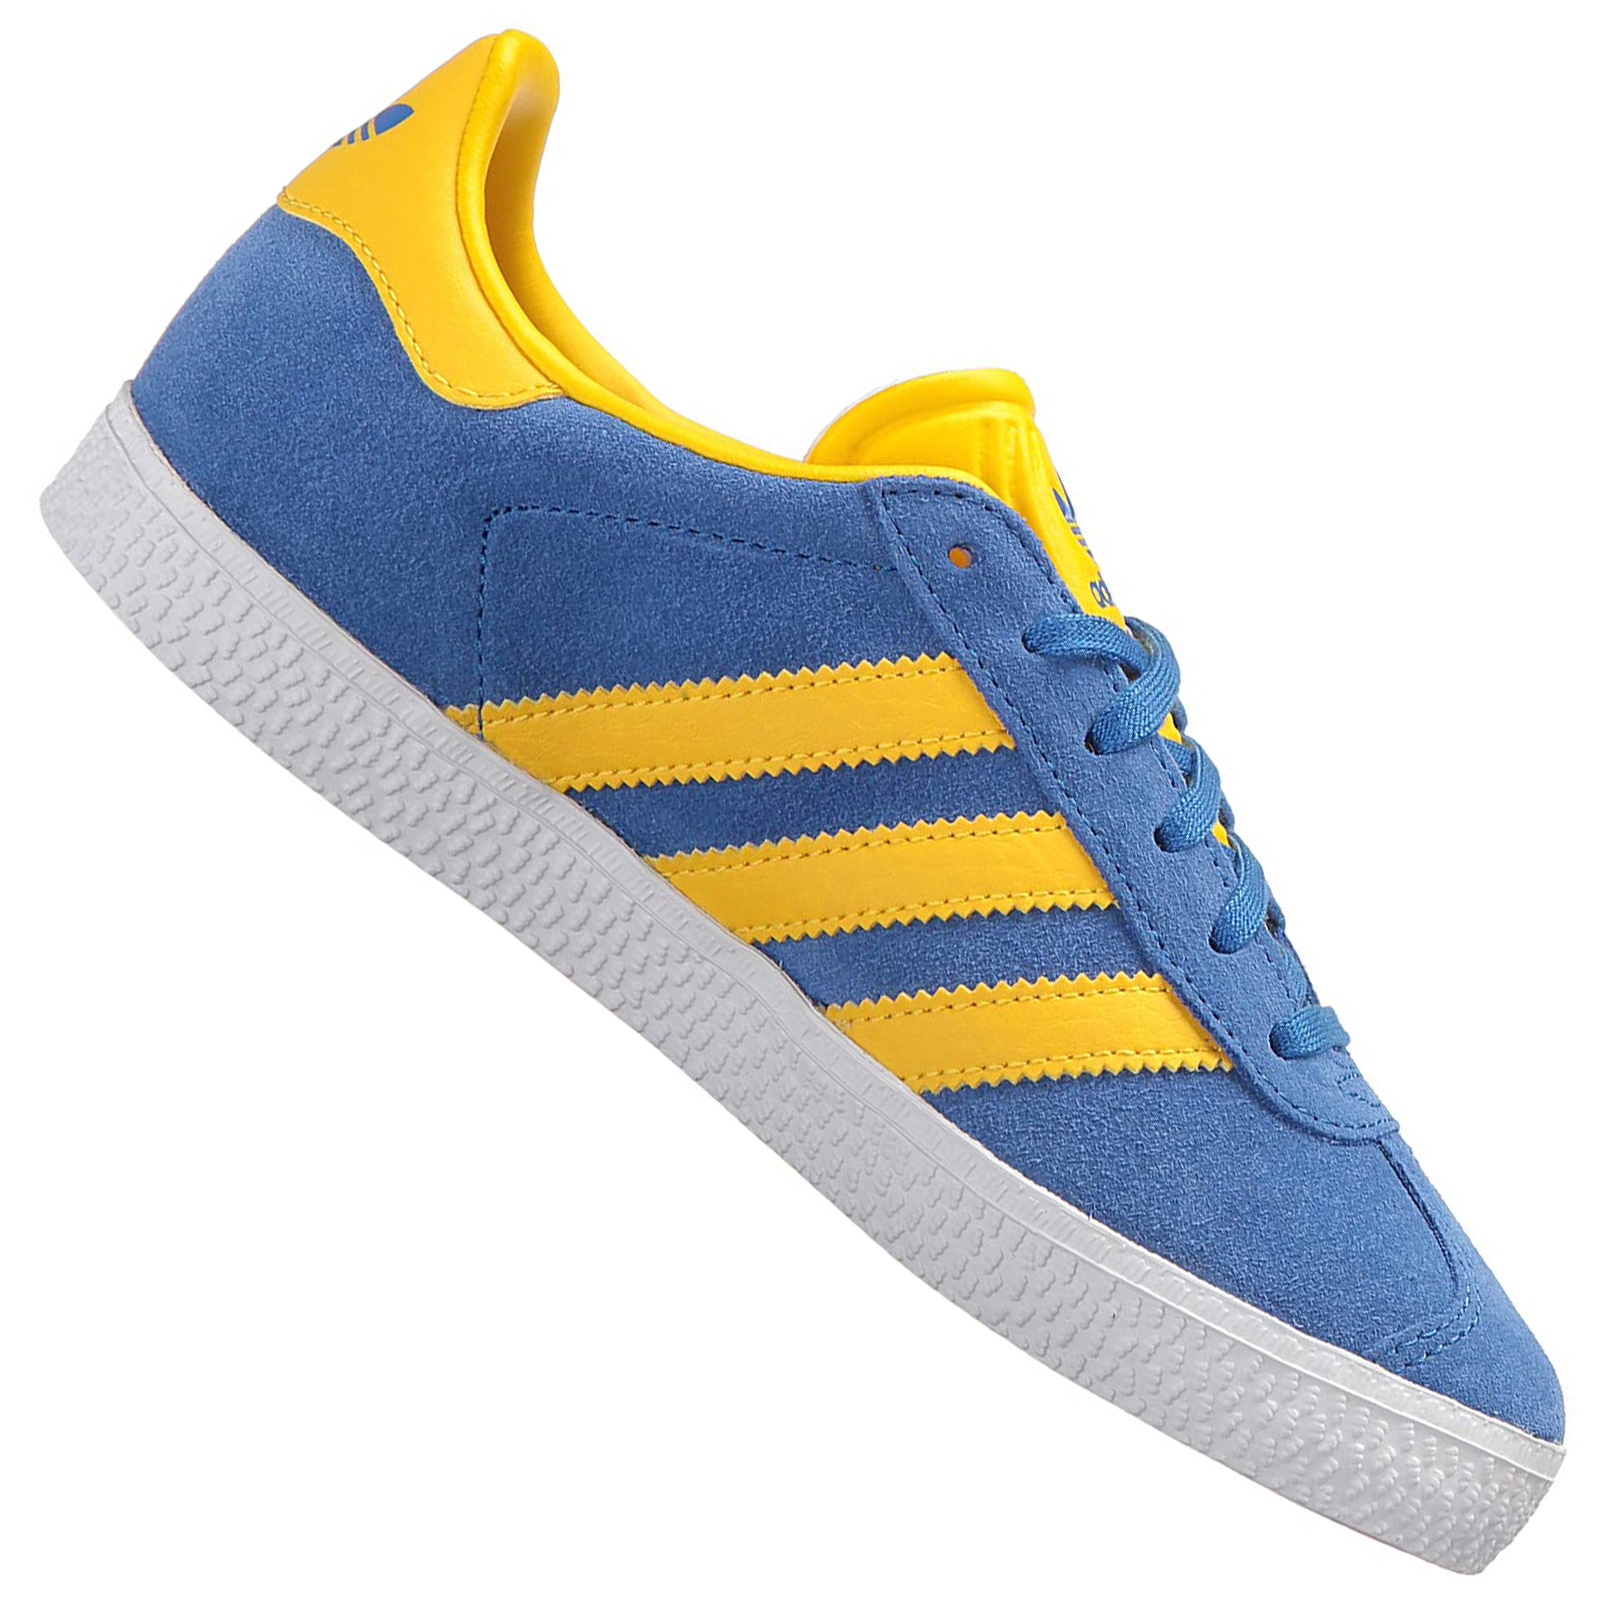 Details about Adidas Originals Gazelle Kids Trainers Leather Shoes Sneakers BY9550 Blue Yellow show original title